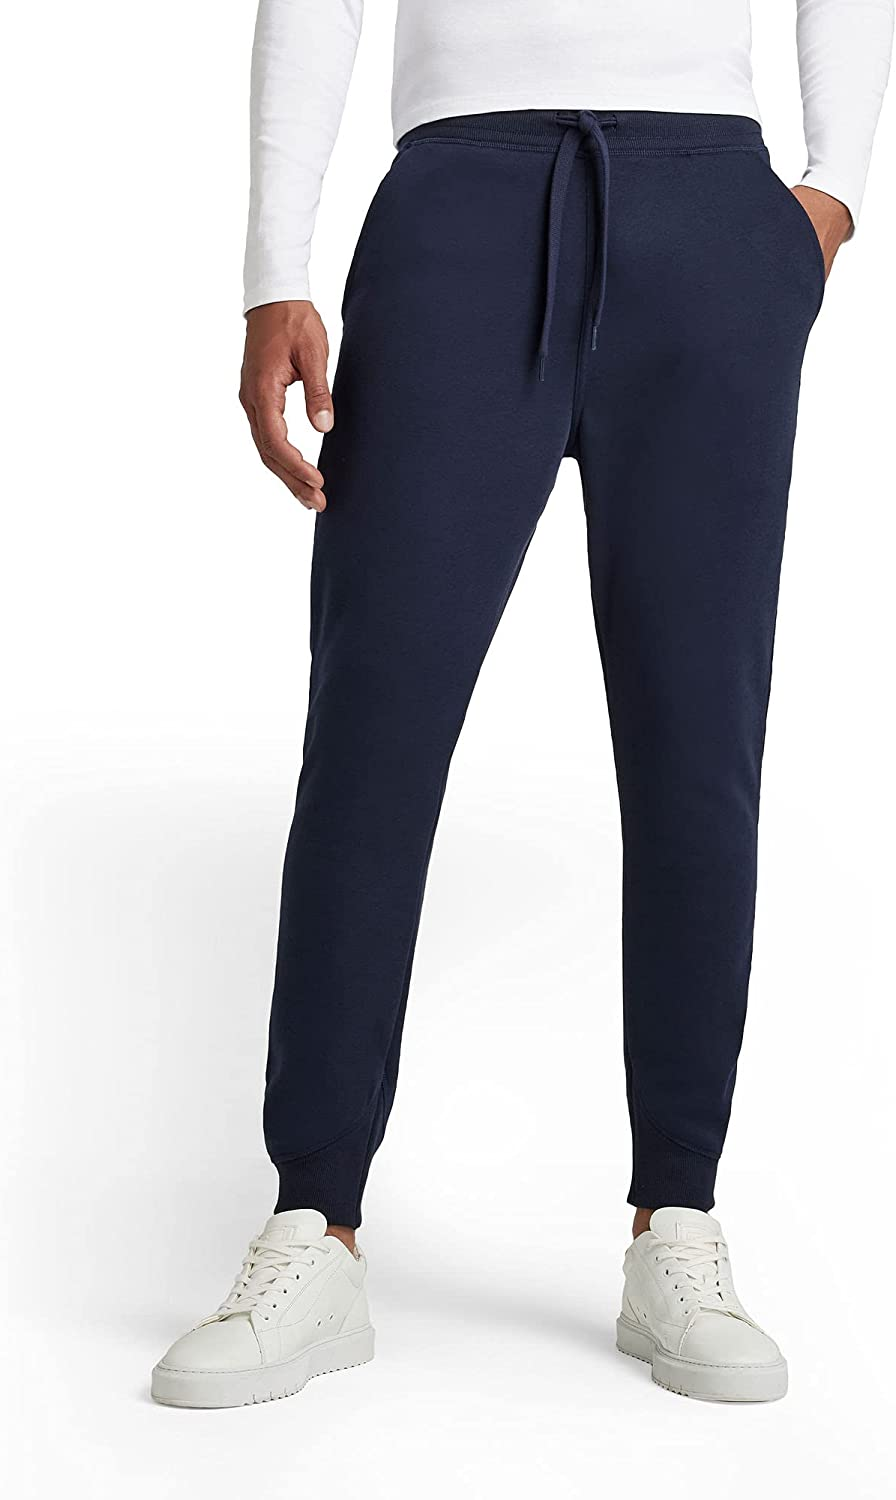 Limited time cheap sale G-Star Men's Premium Core Long-awaited Type Blue Joggers